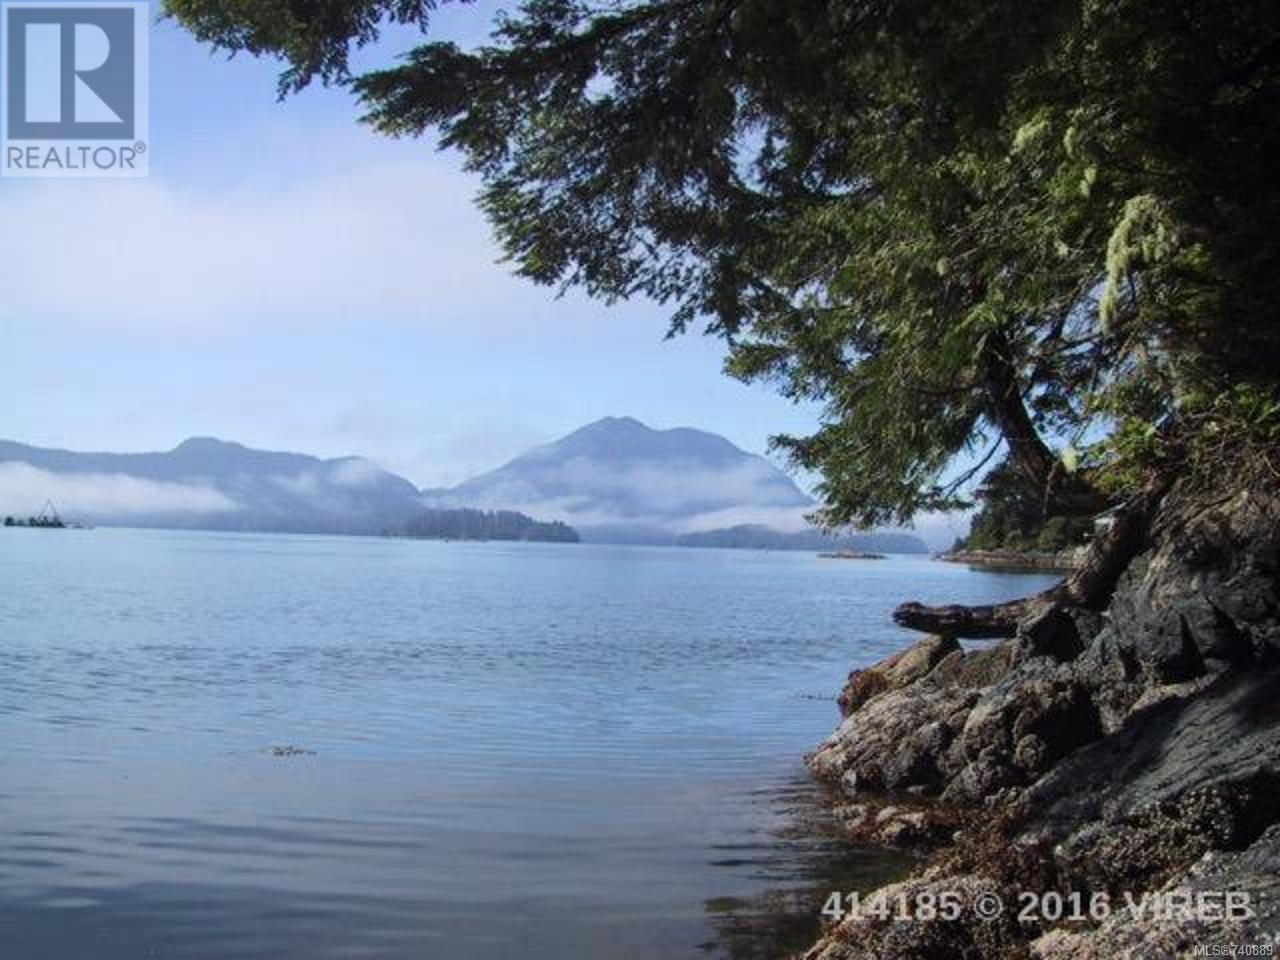 MLS® #740889 - Tofino House For sale Image #2